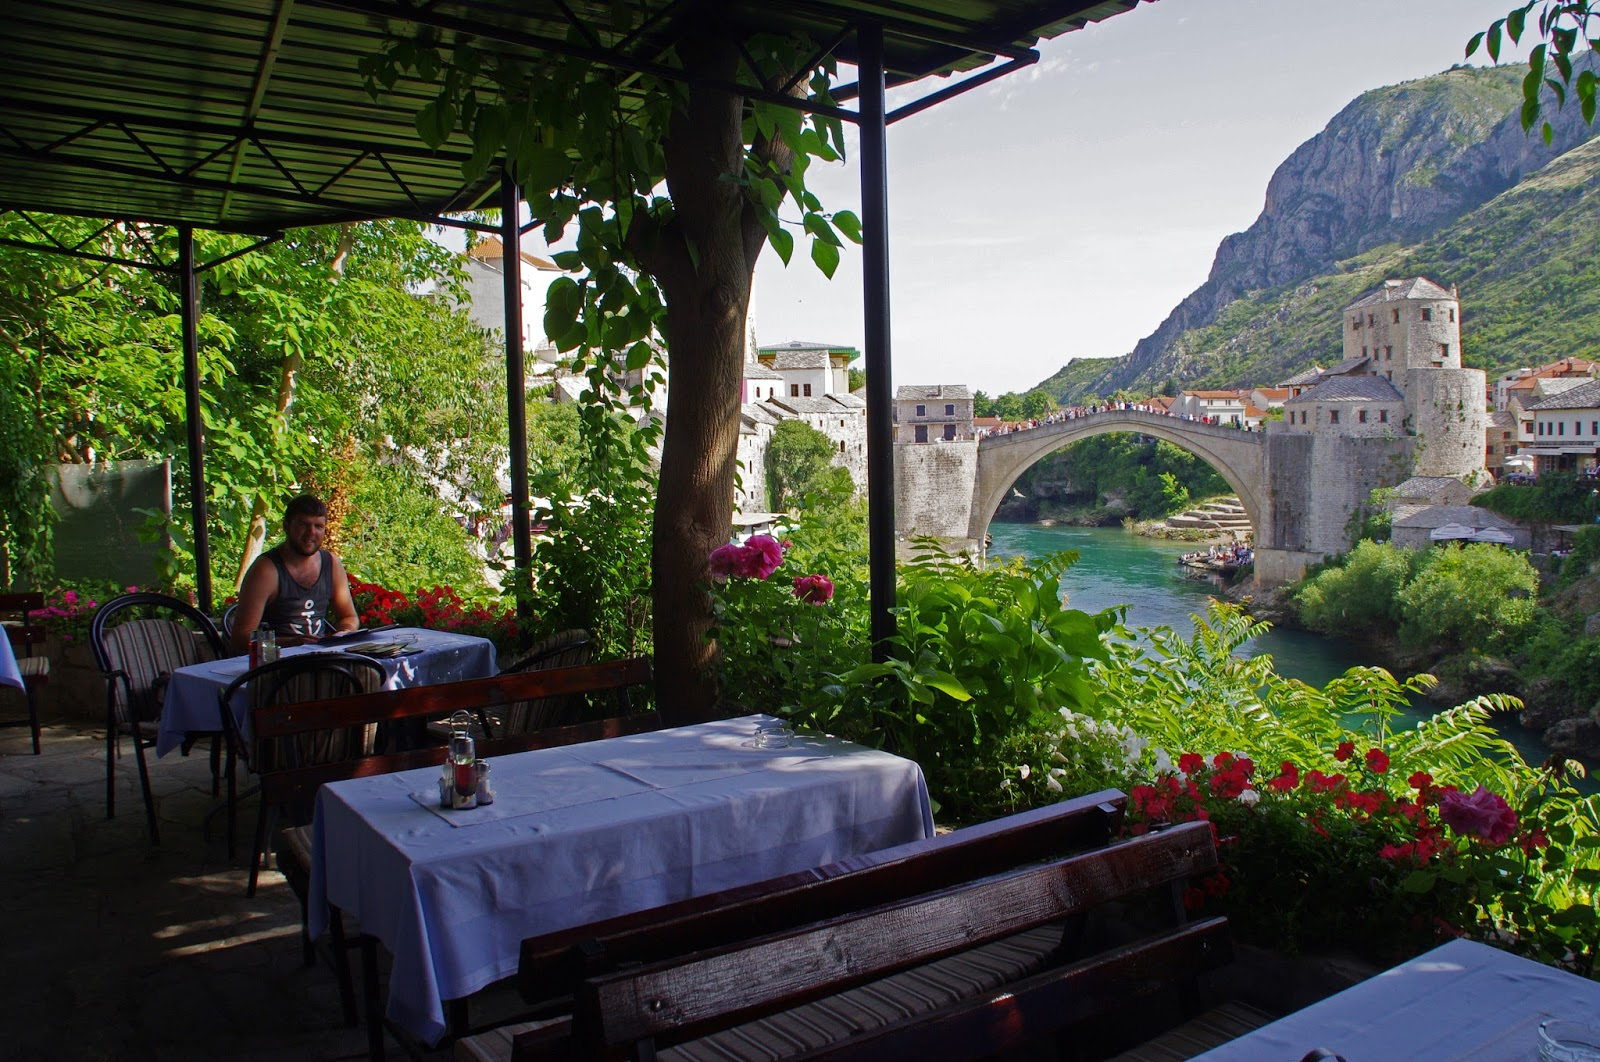 Lunch view of Stari Most Mostar